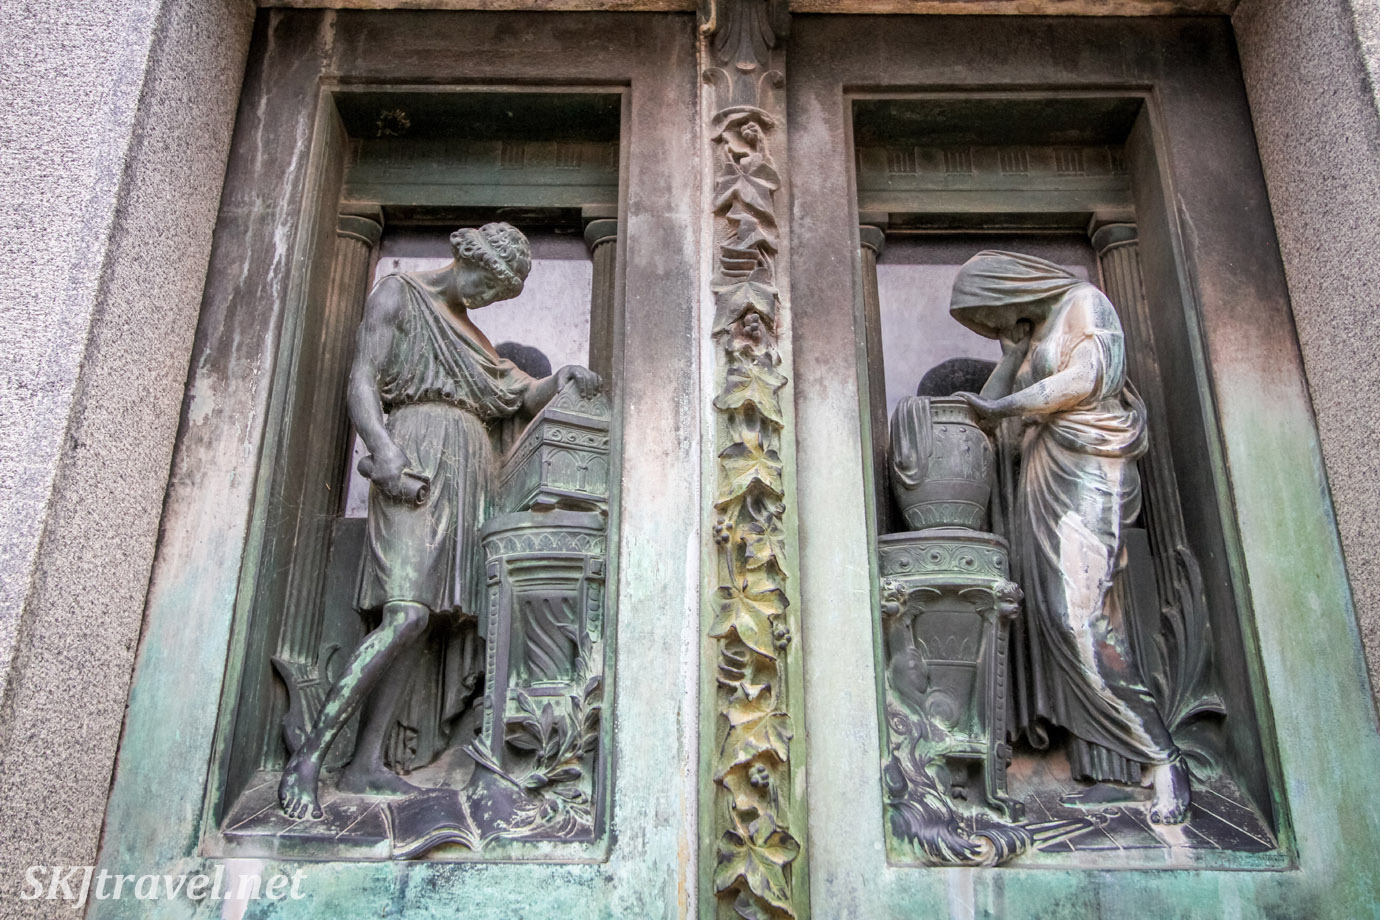 Beautiful bronze sculptures in the door of a mausoleum in Recoleta Cemetery, Buenos Aires, Argentina.